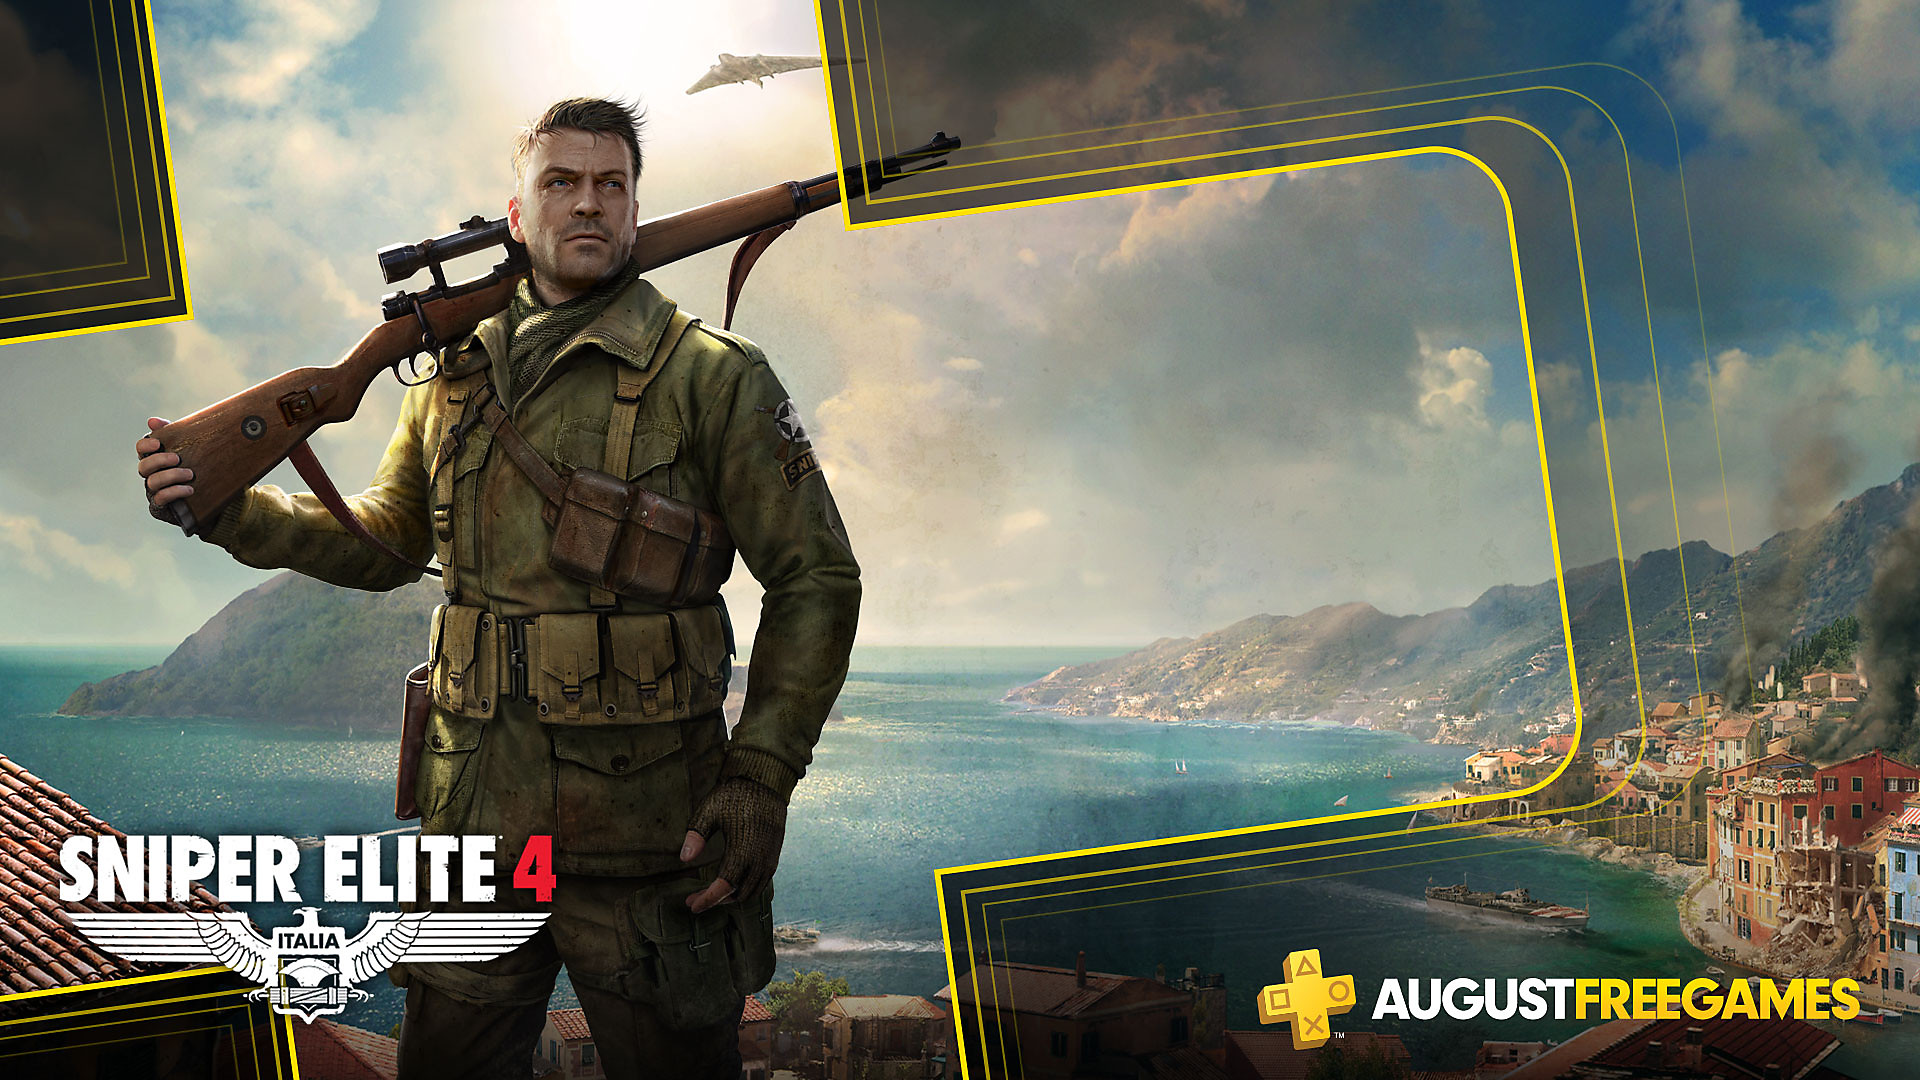 Click here to get Sniper Elite 4 free from the PlayStation Store for PlayStation Plus members